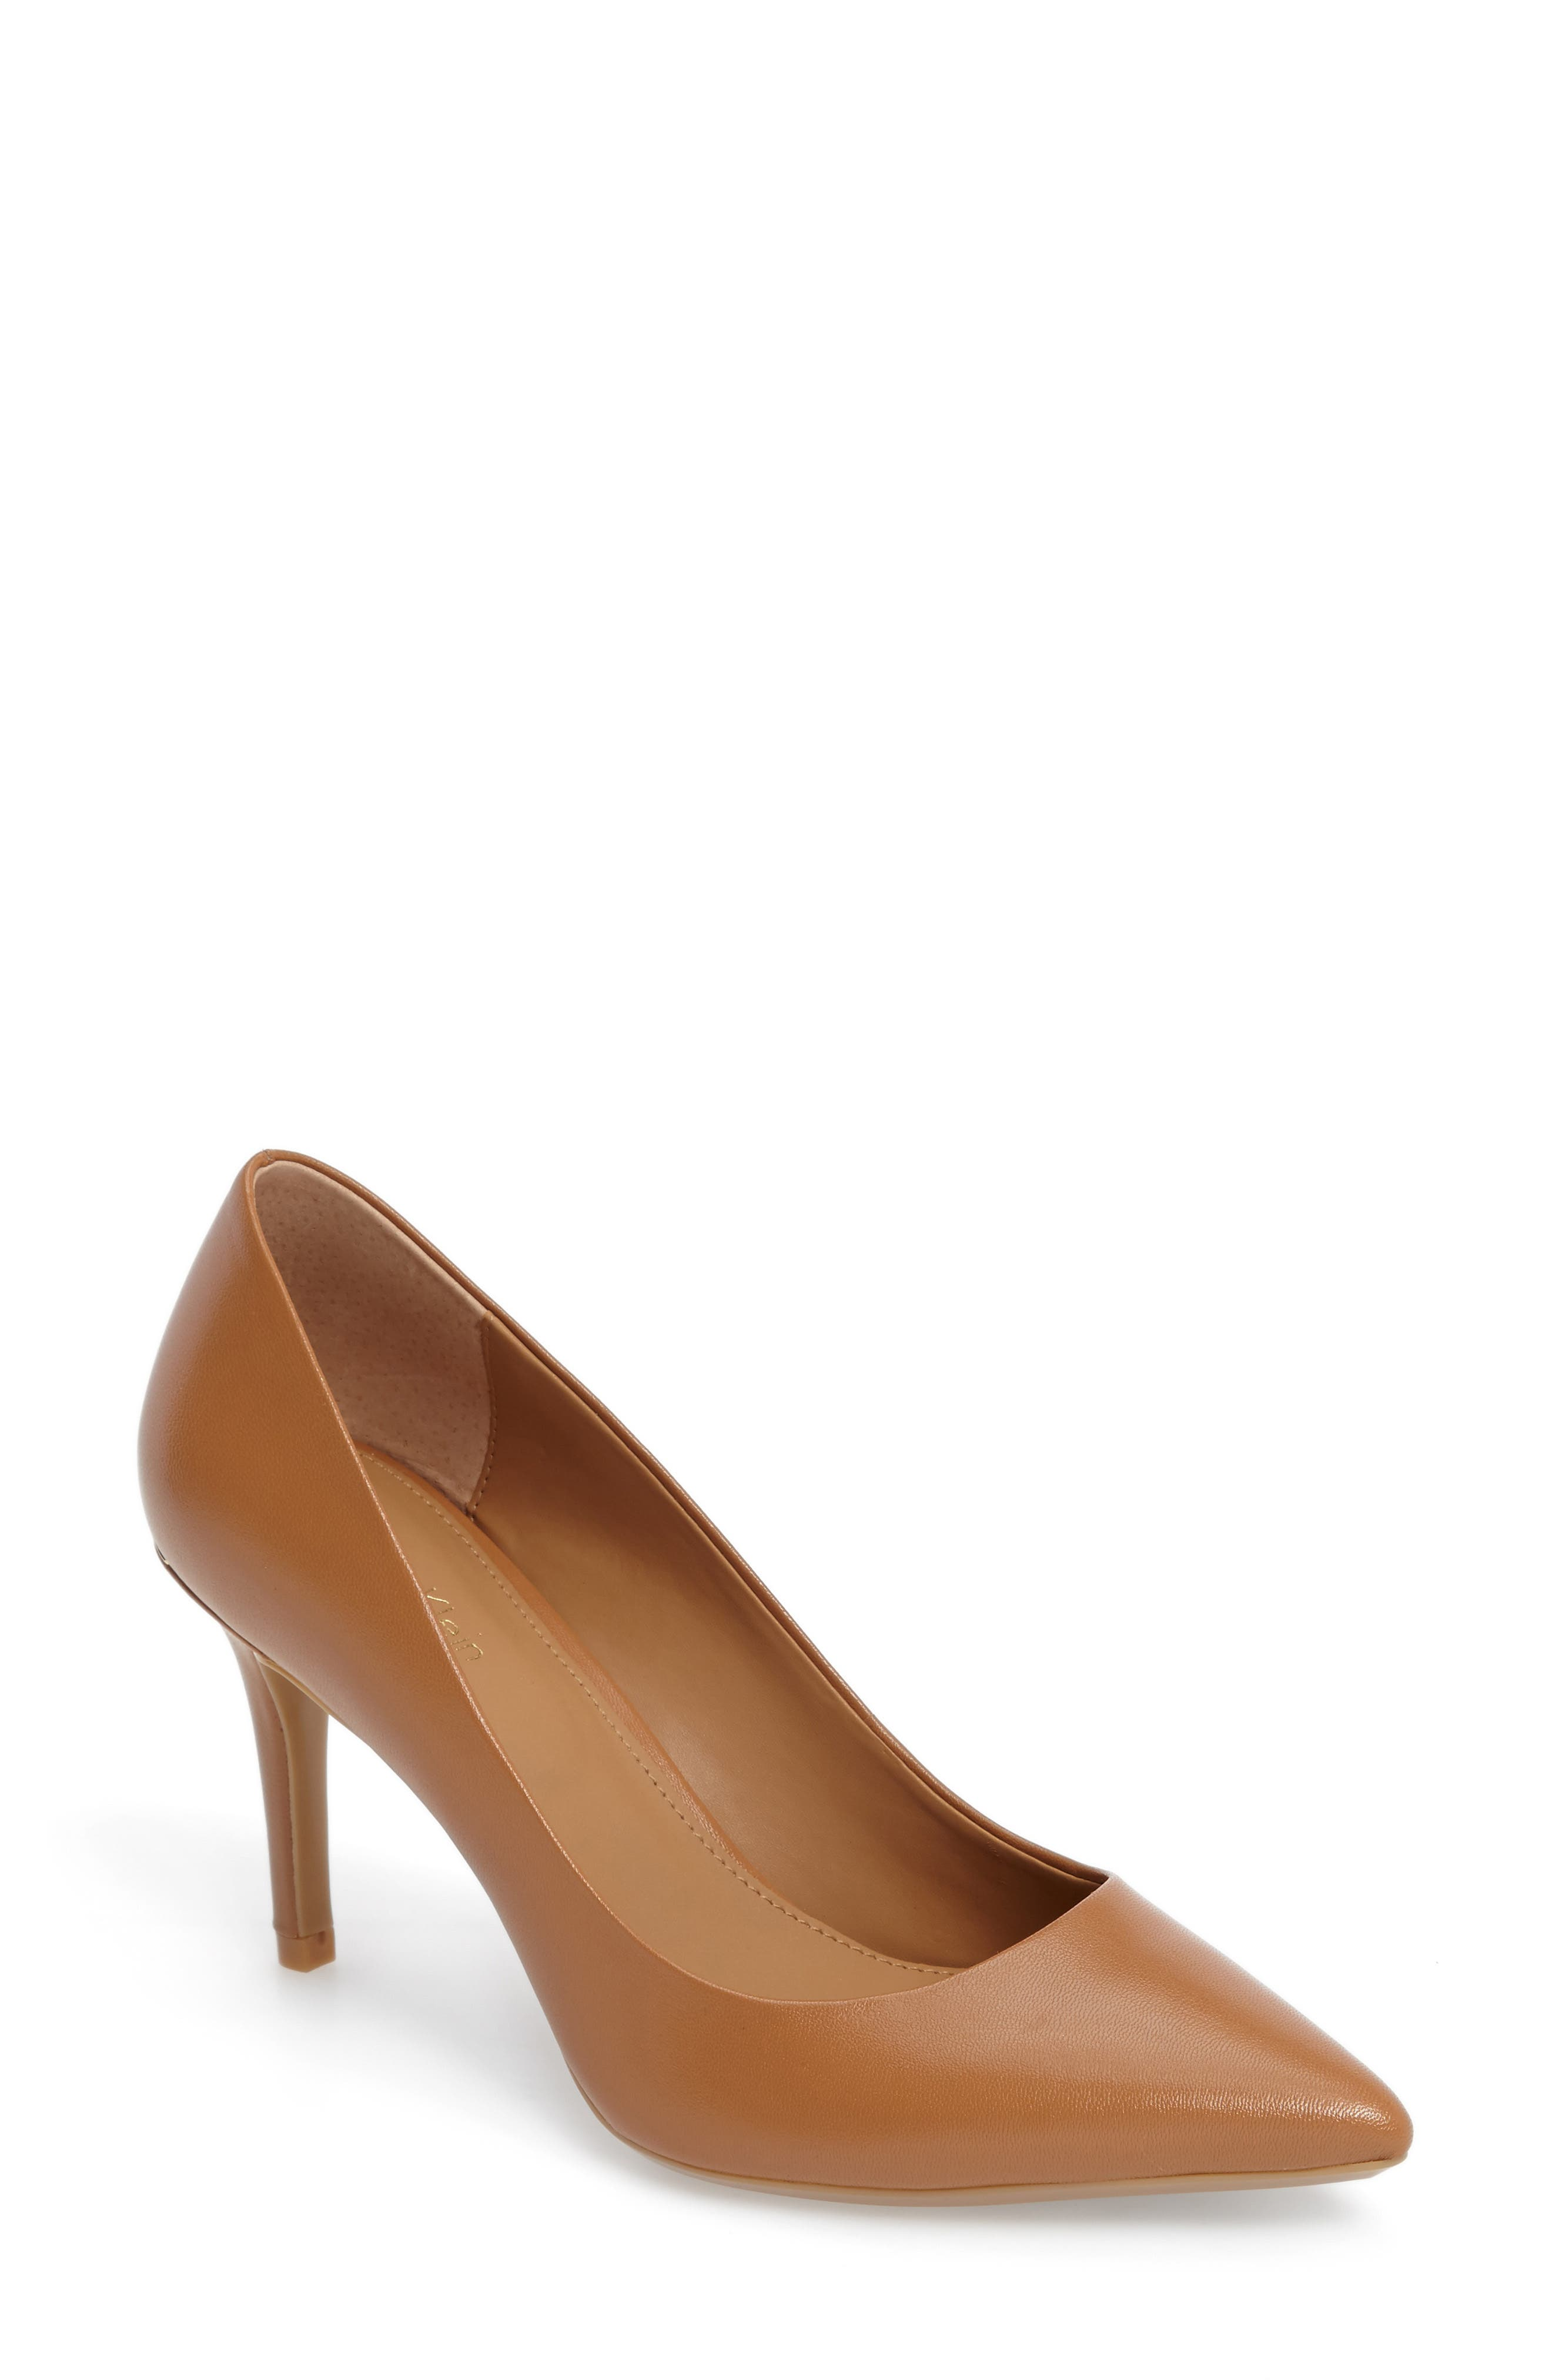 Alternate Image 1 Selected - Calvin Klein 'Gayle' Pointy Toe Pump (Women)